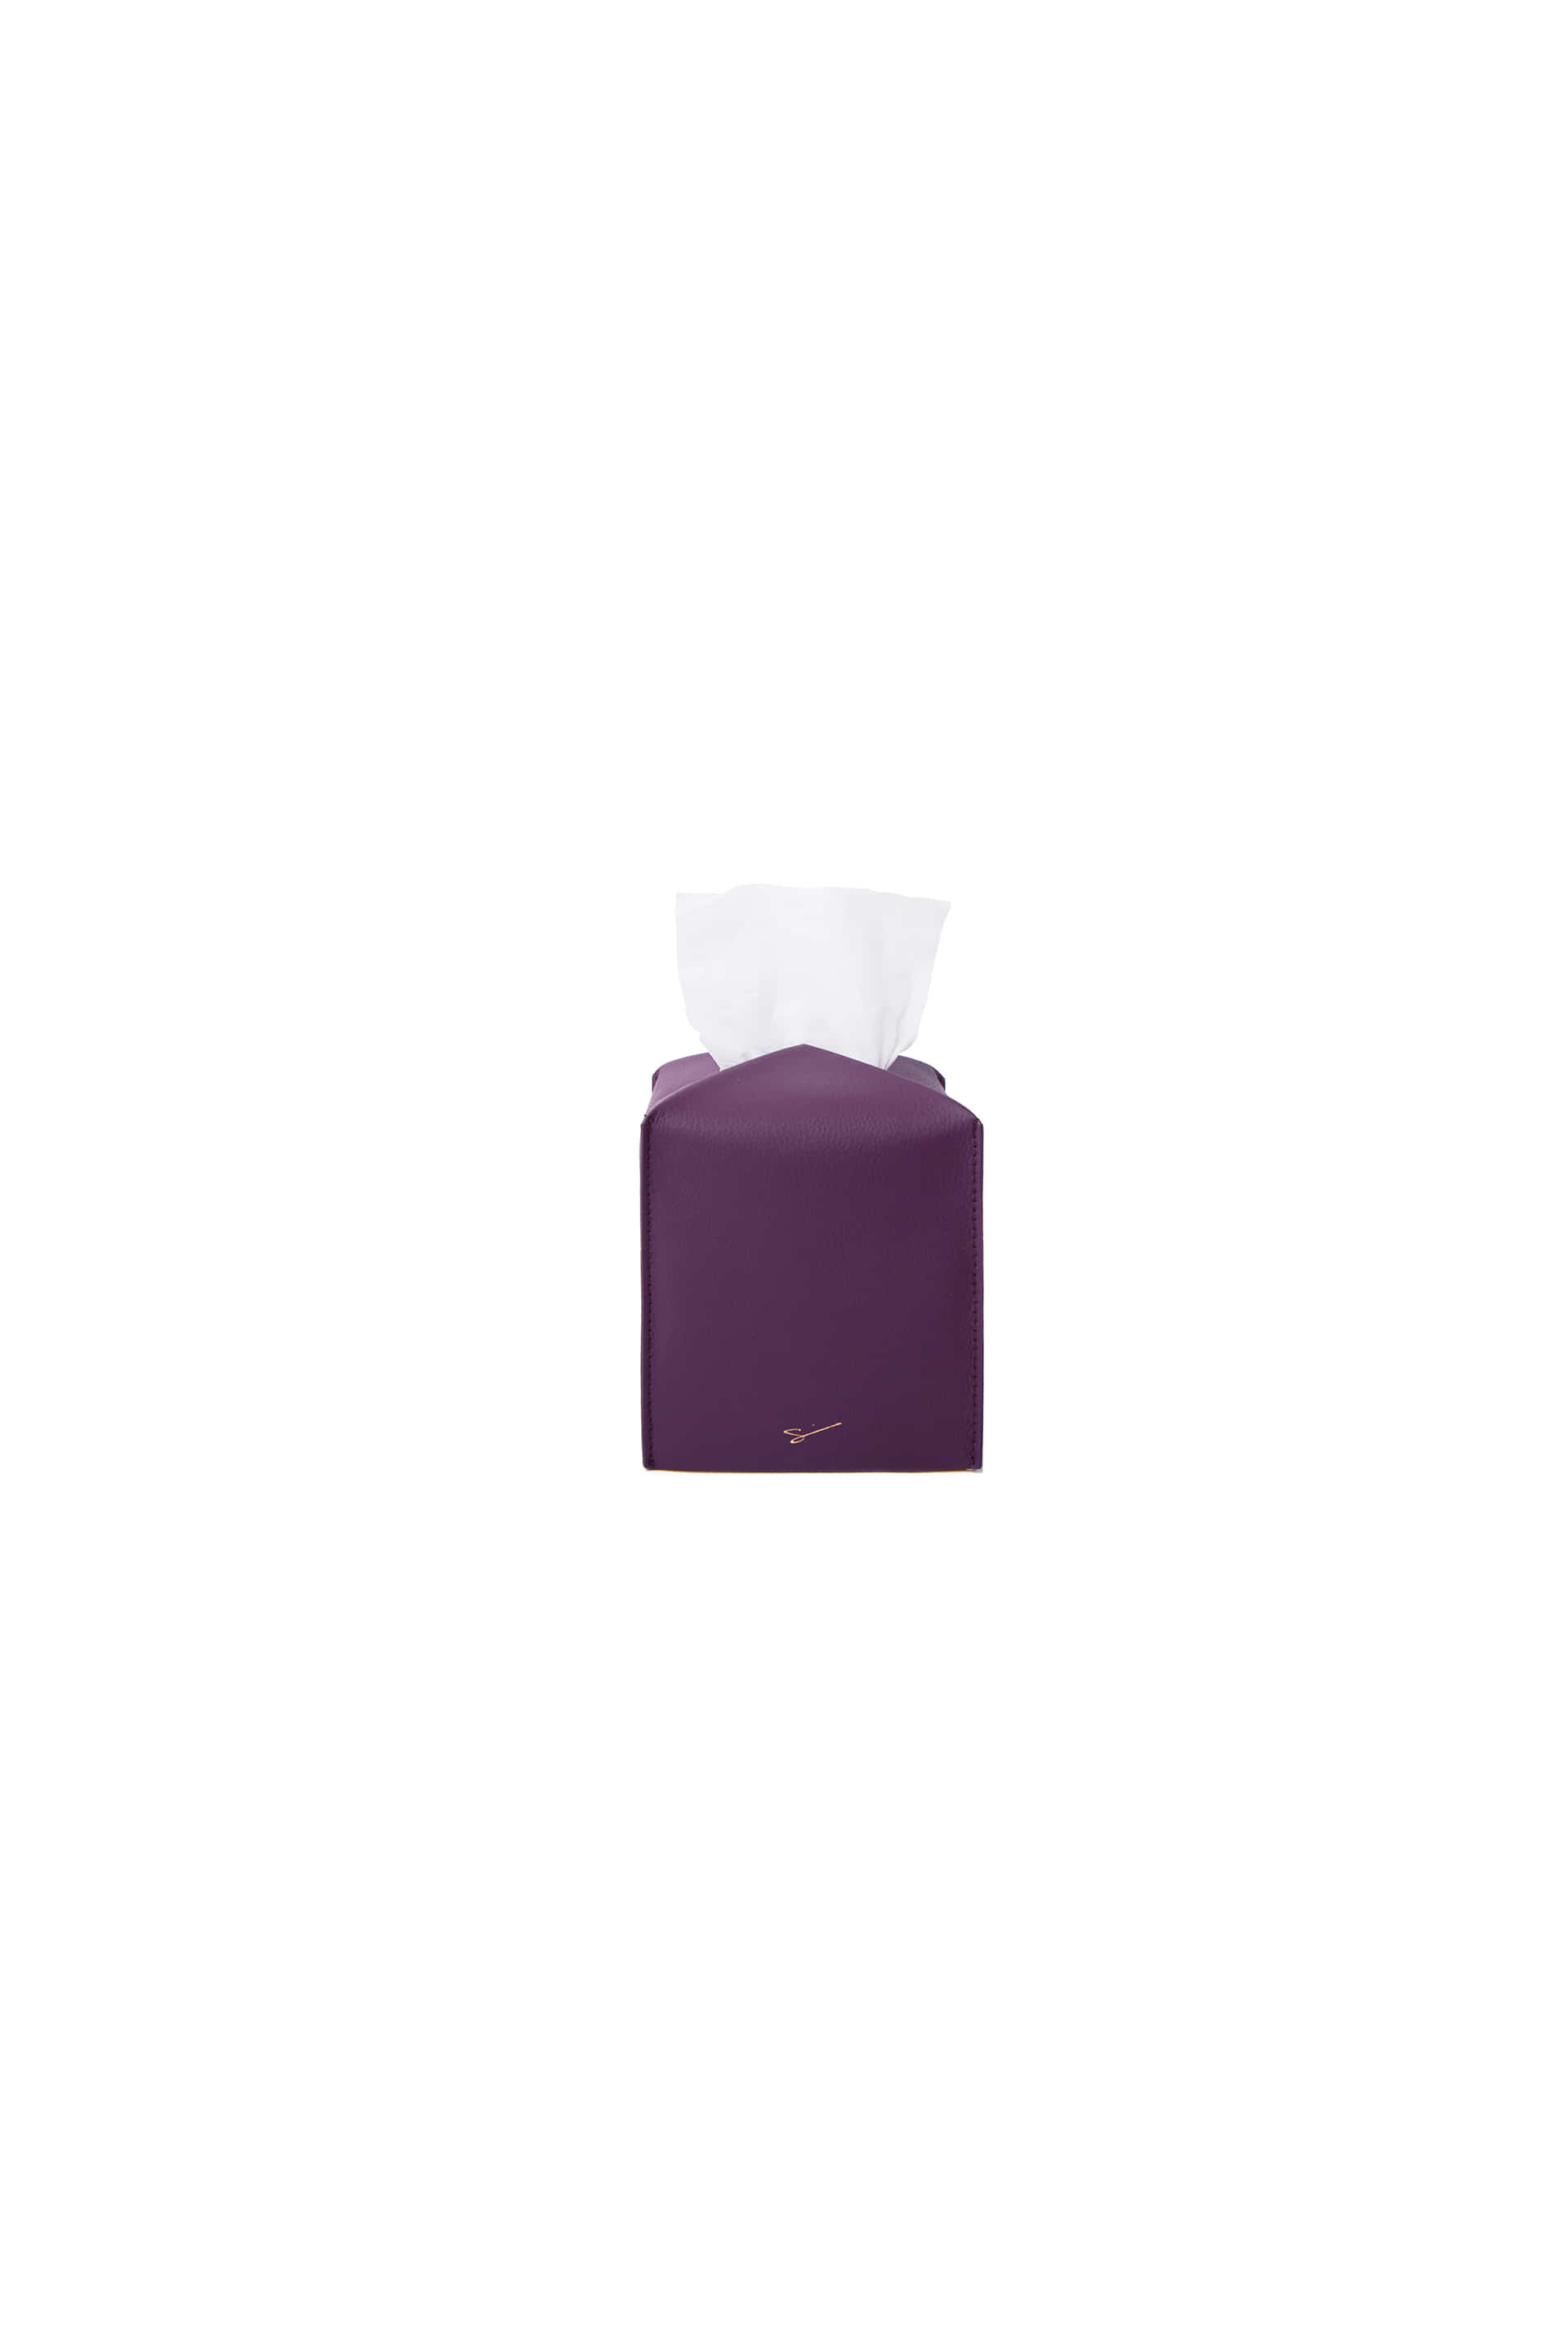 TISSUE CASE S 18 Purple